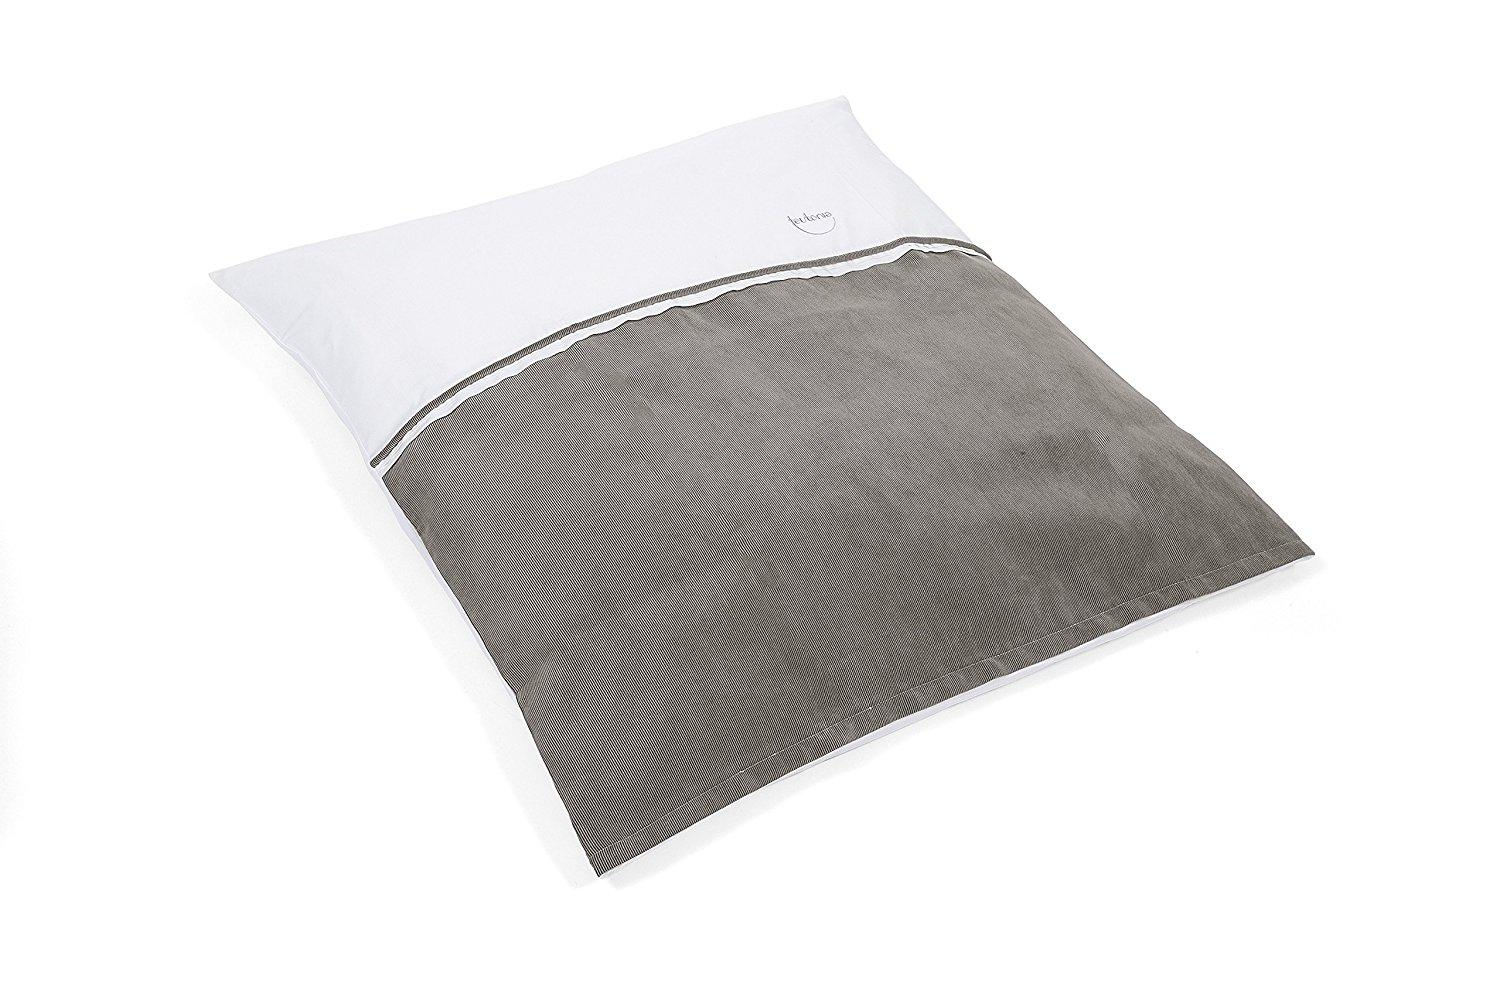 teutonia Bed Linen 4950/4990 - Teutonia